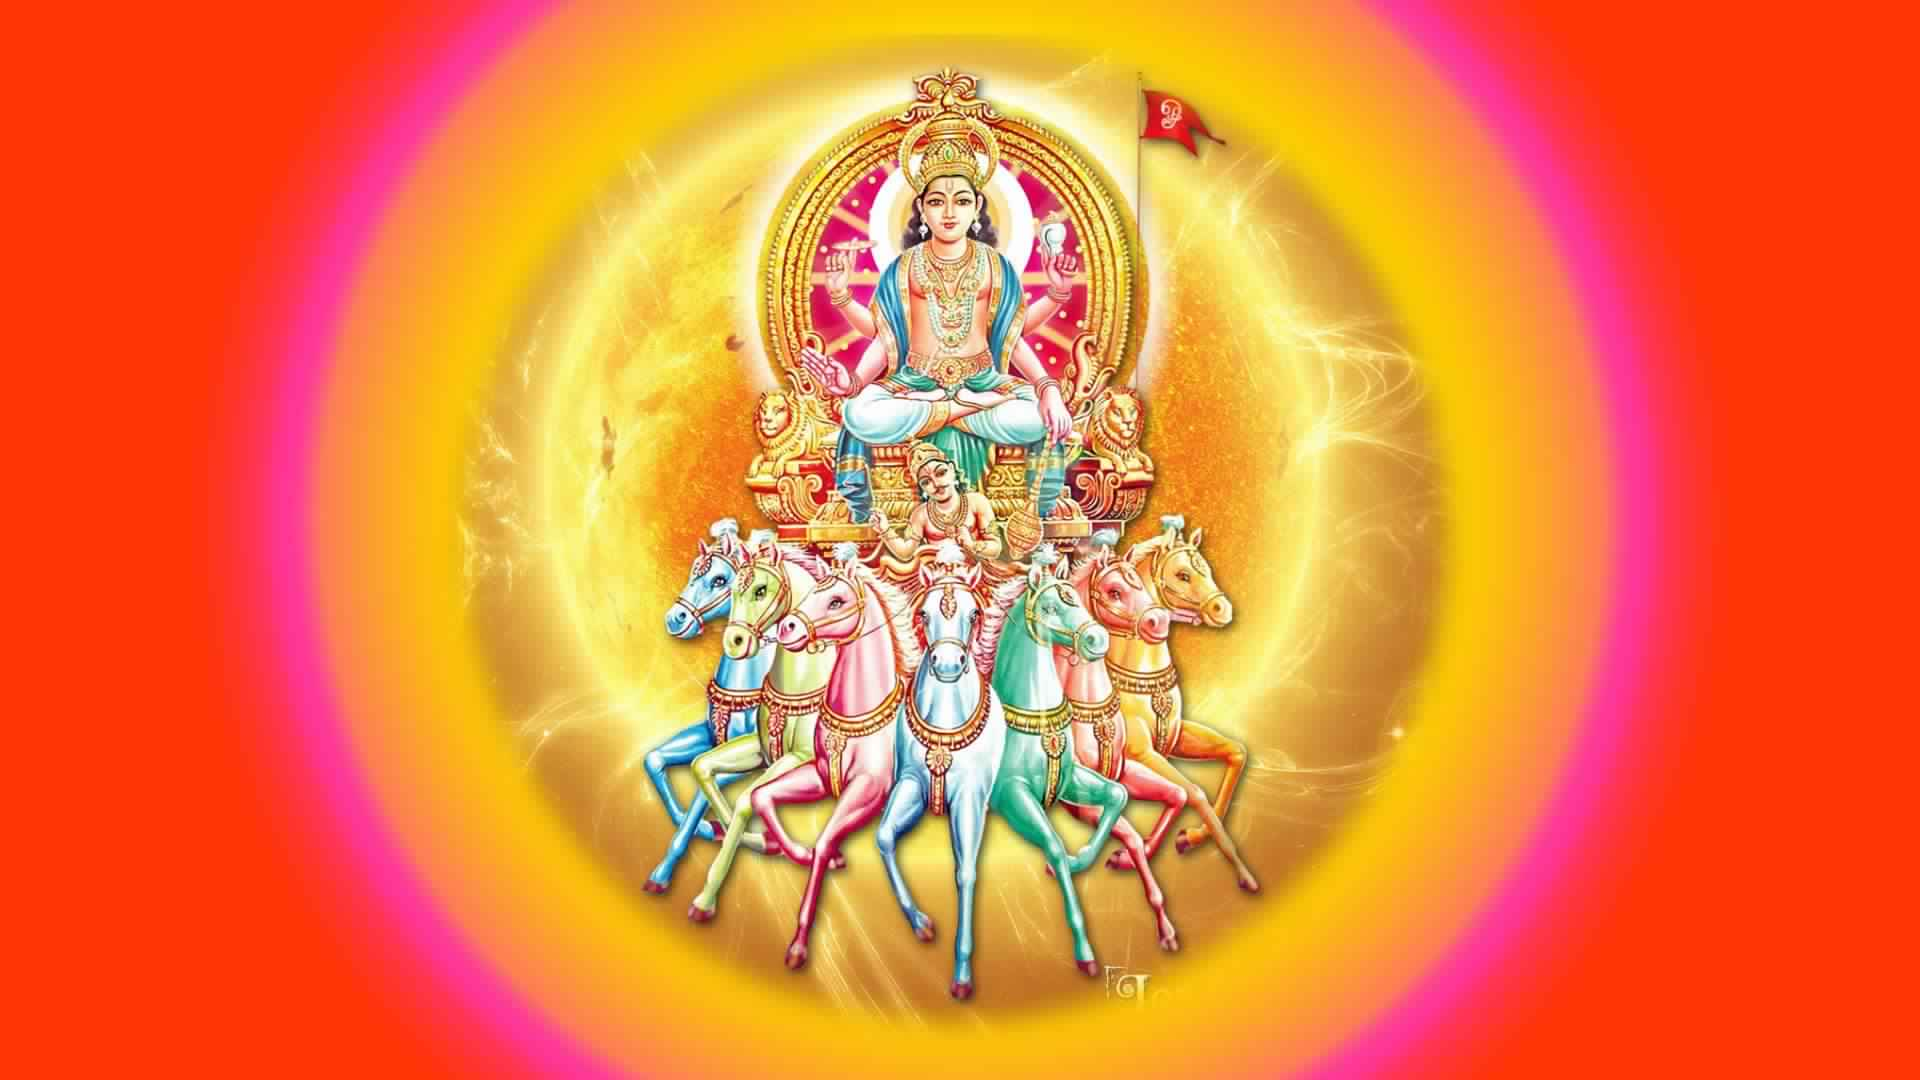 Shree Surya Dev Wallpaper